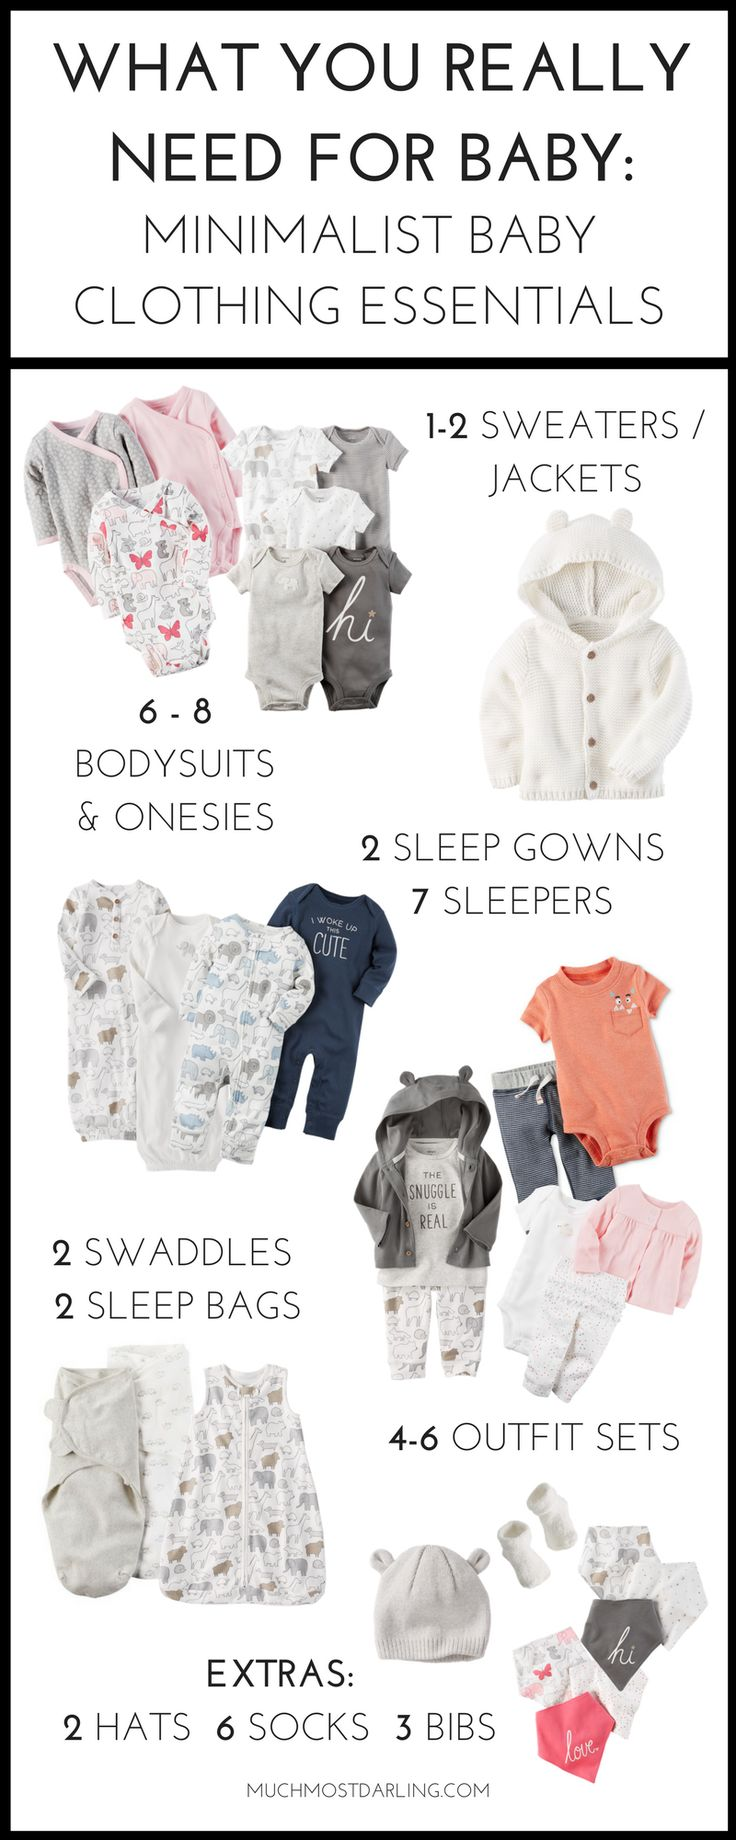 #AD Wondering how many baby clothes you need for each size? Come see my first year essentials for a minimalist capsule wardrobe for your baby at Carter's. #lovecarters